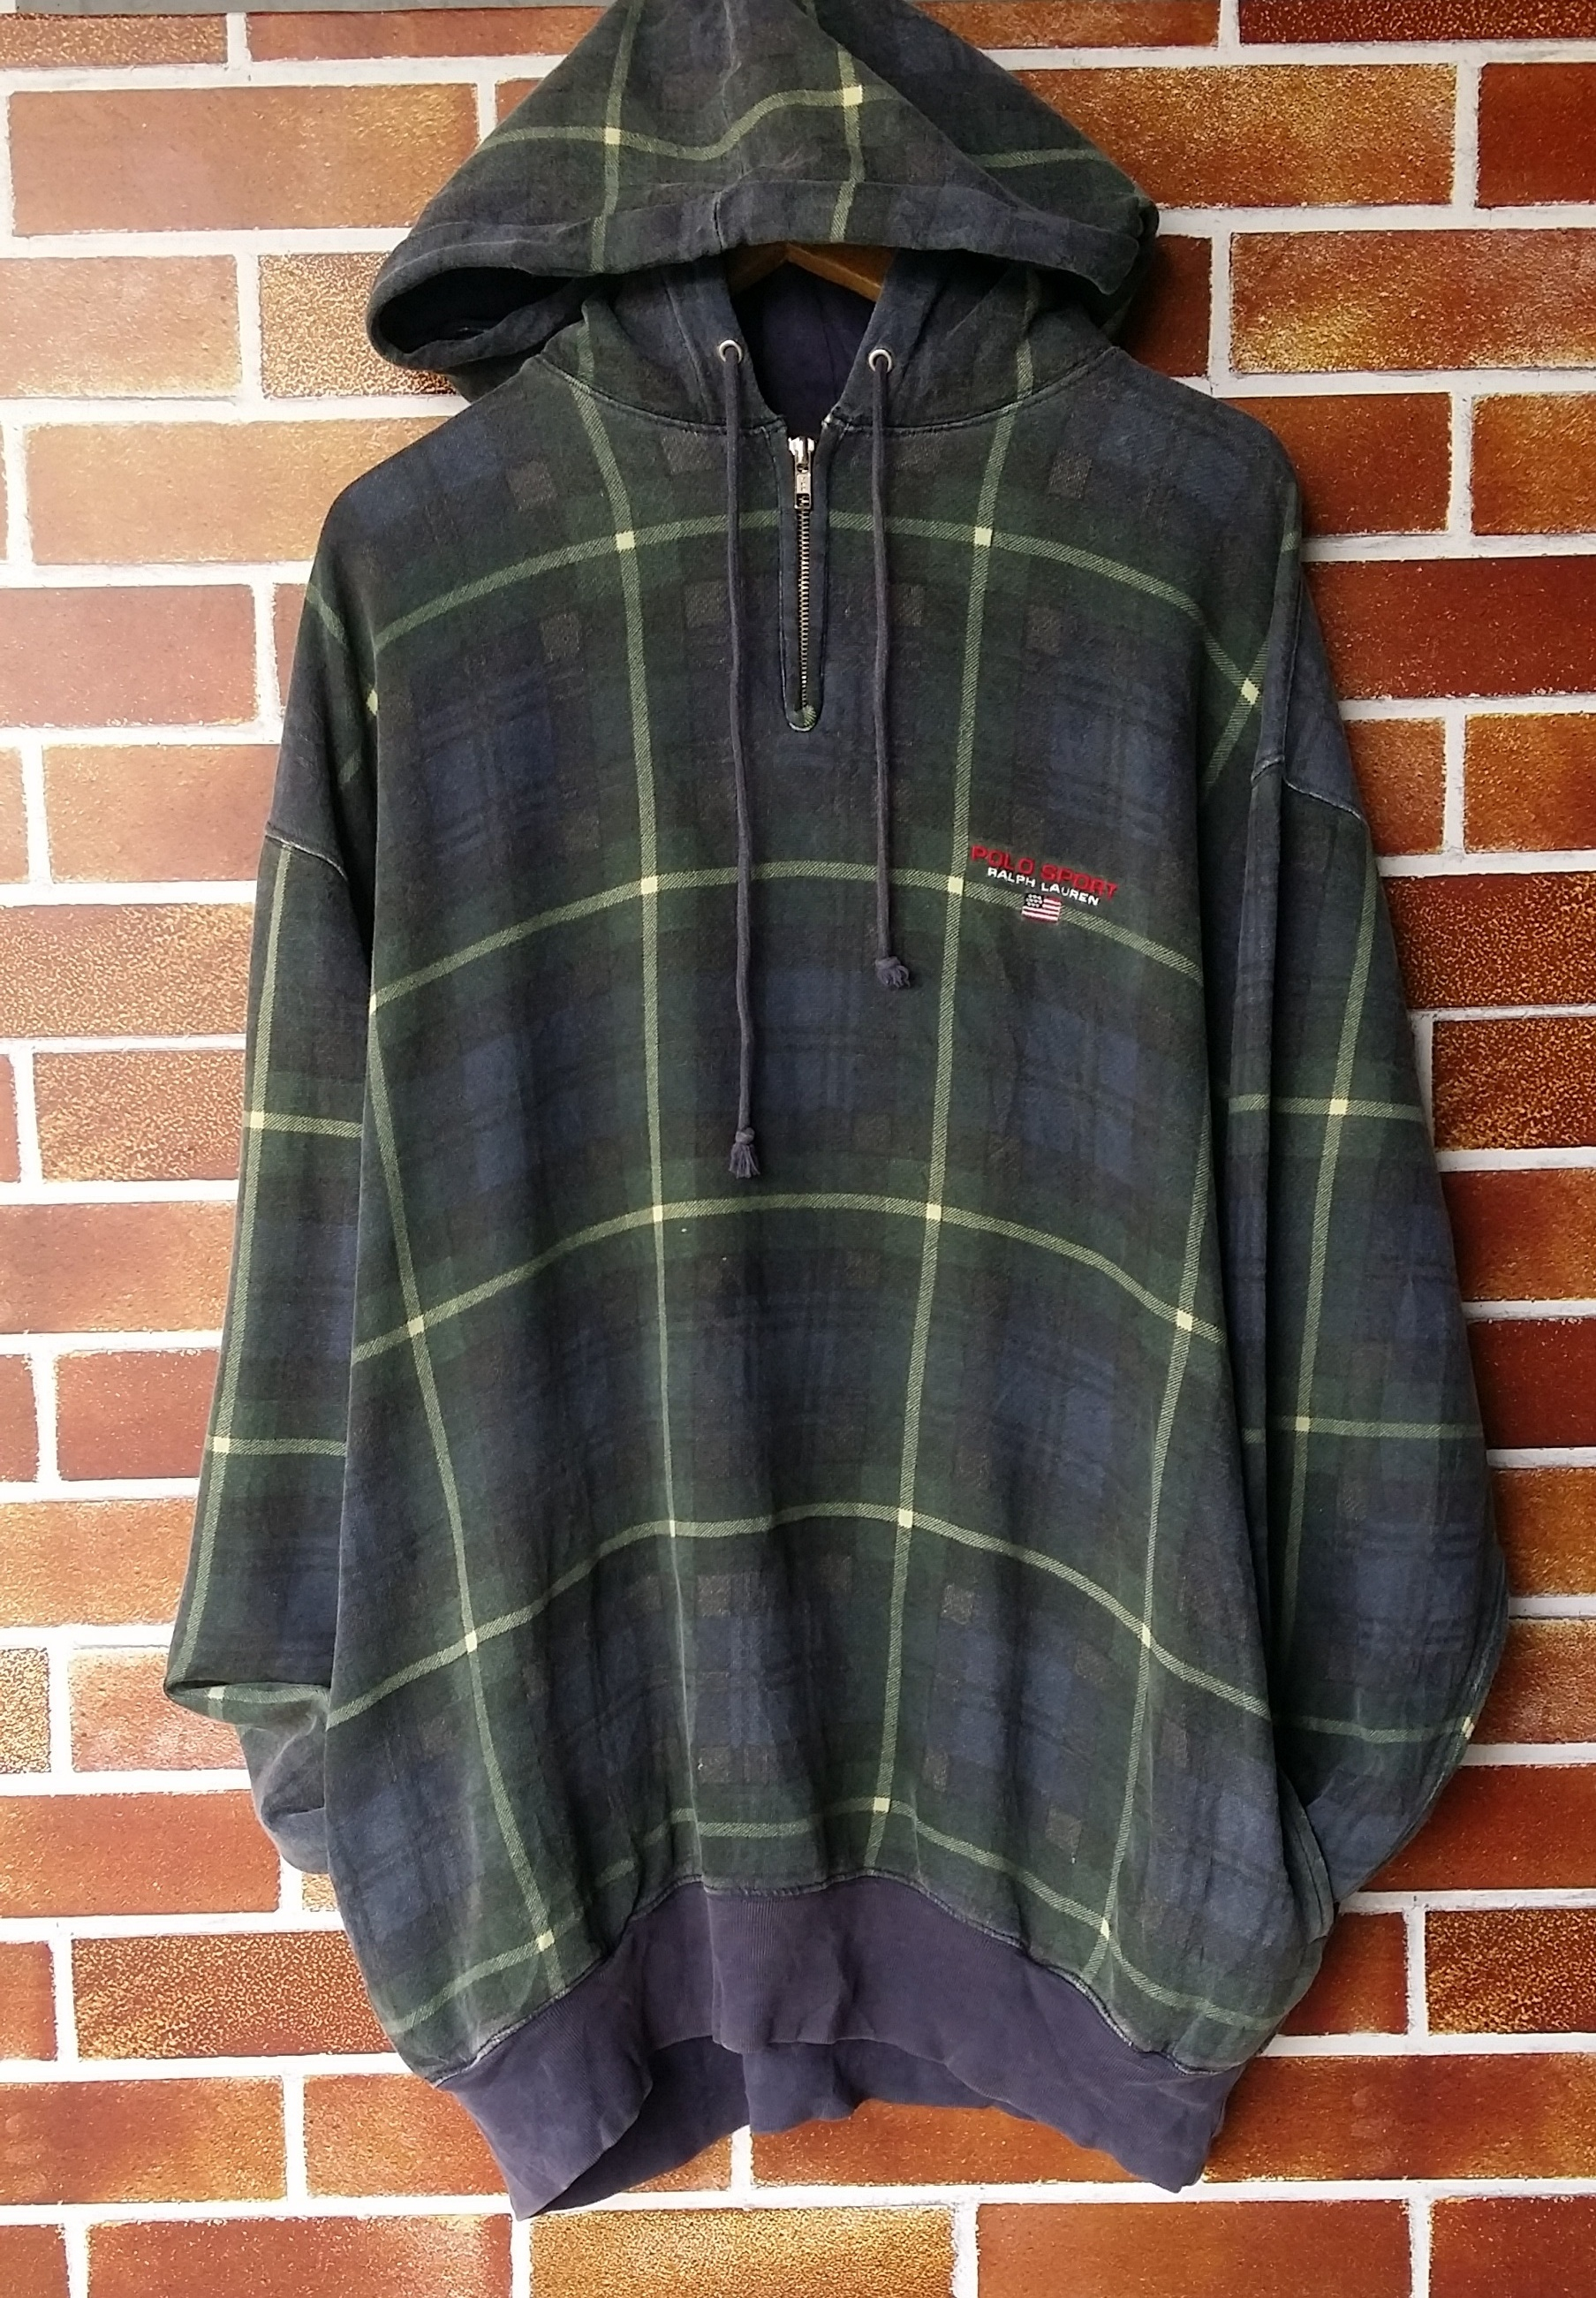 56013317a Polo Ralph Lauren ×. Rare!! Vintage 90 s Checked Polo Sport Script Logo  Spellout with USA Small Flag Hoodie Sweatshirt. Size  US XL ...